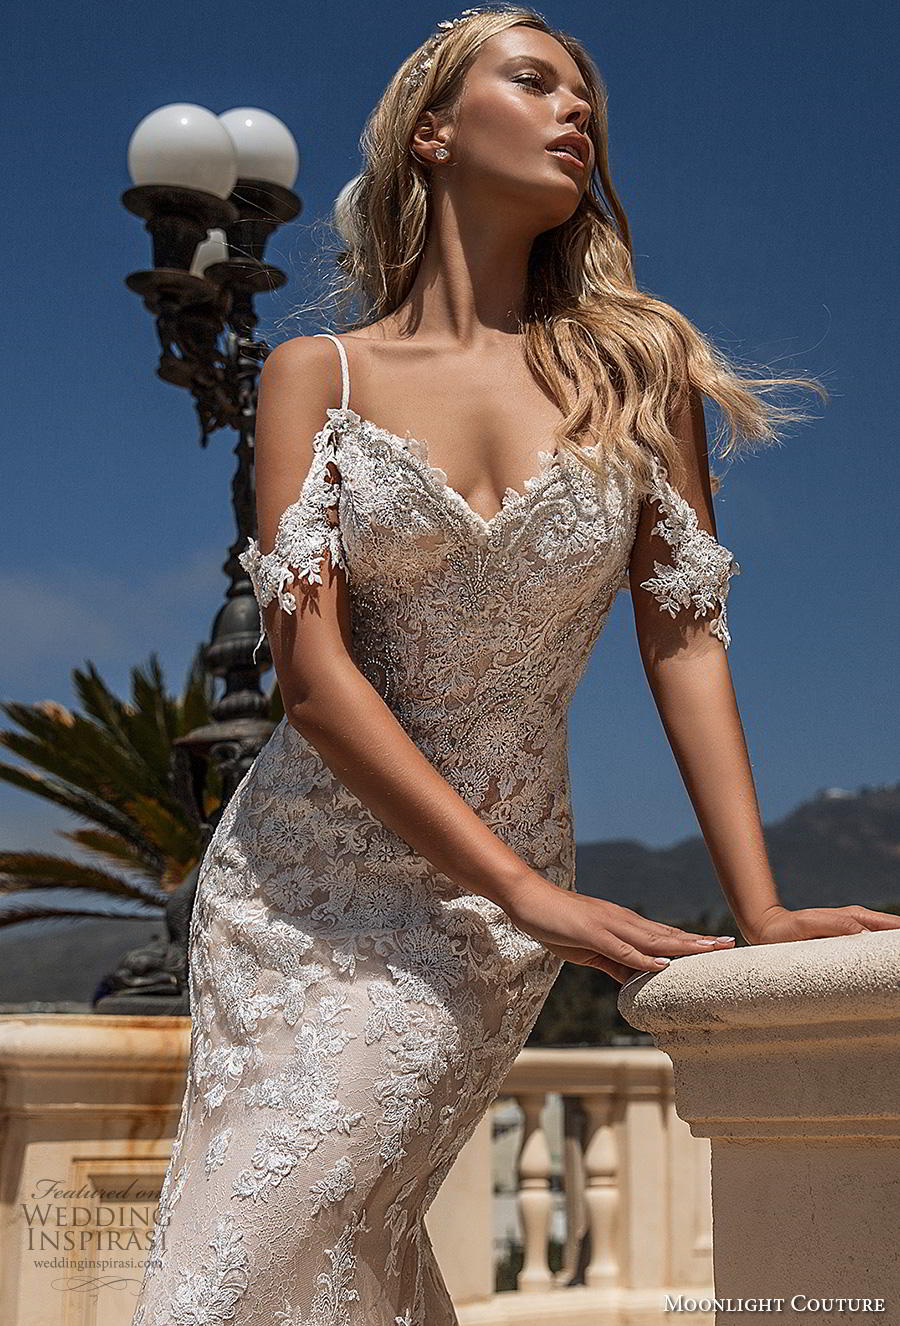 moonlight s2019 couture bridal cold shoulder spaghetti strap sweetheart neckline full embellishment elegant fit and flare wedding dress backless low scoop back chapel train (4) zv